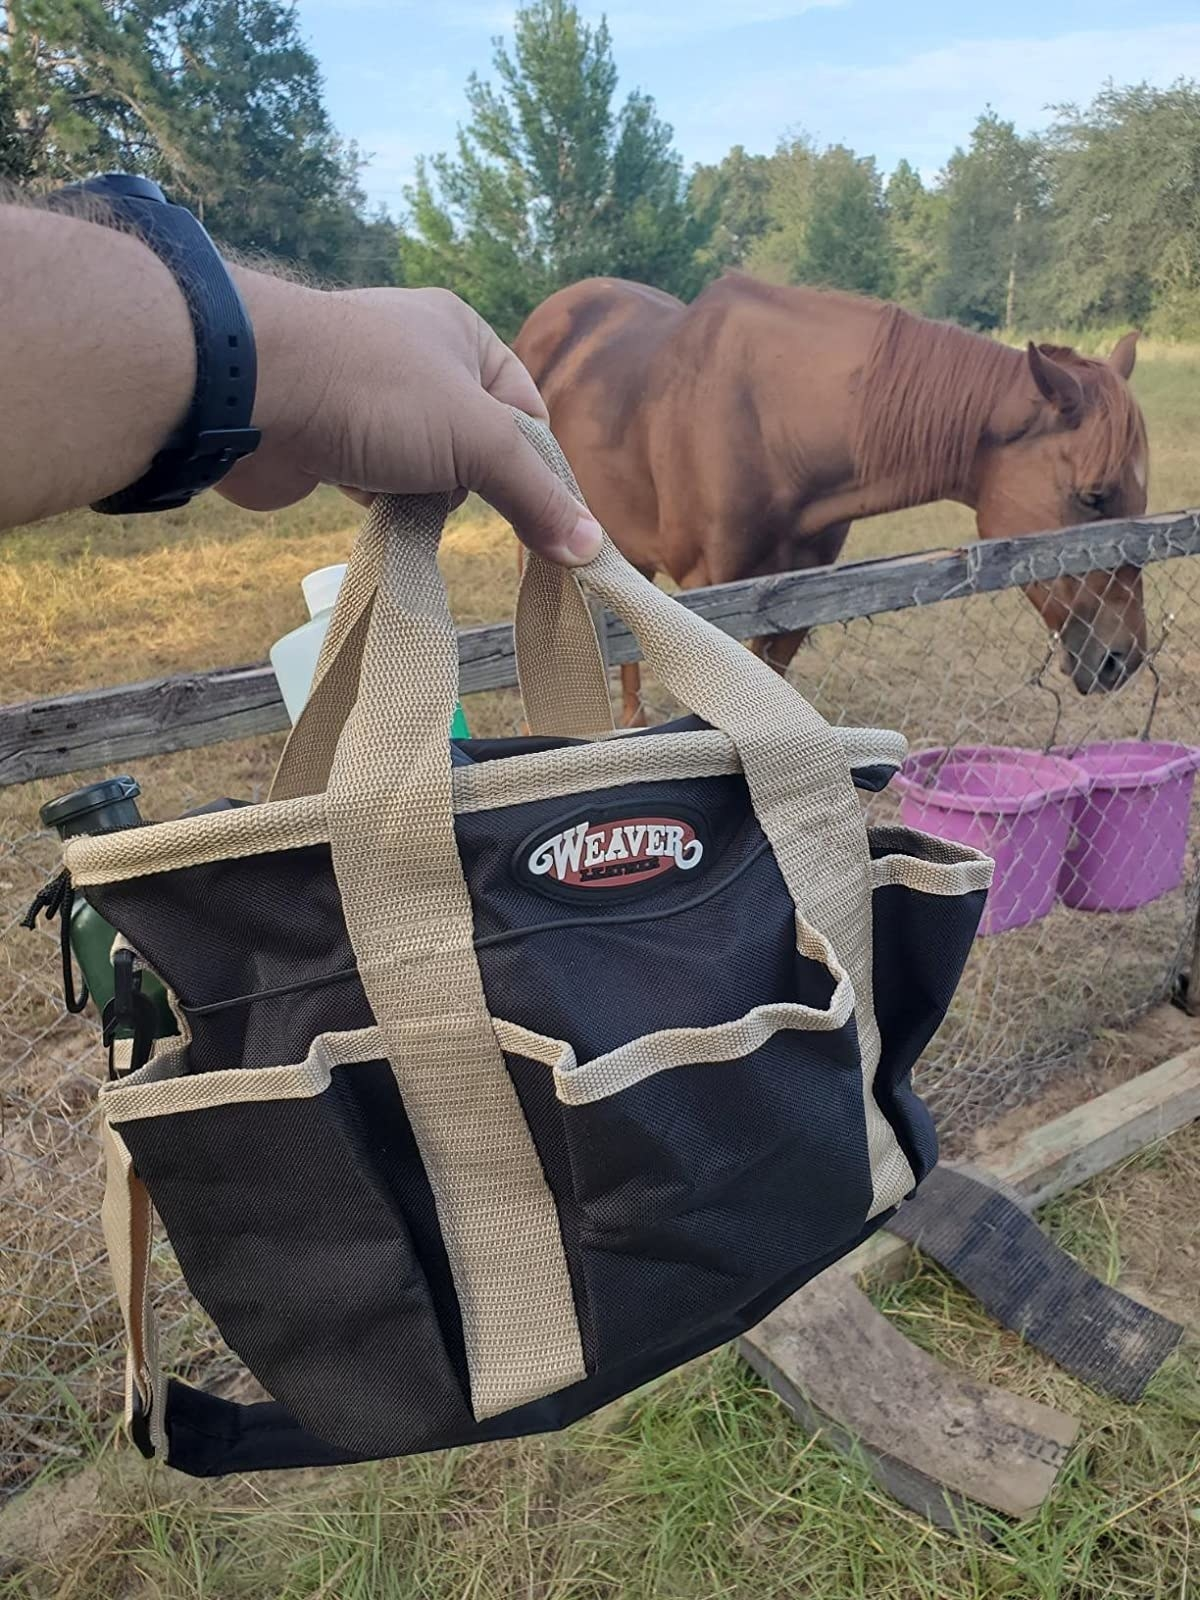 Reviewer image of heavy duty tote filled with horse grooming materials